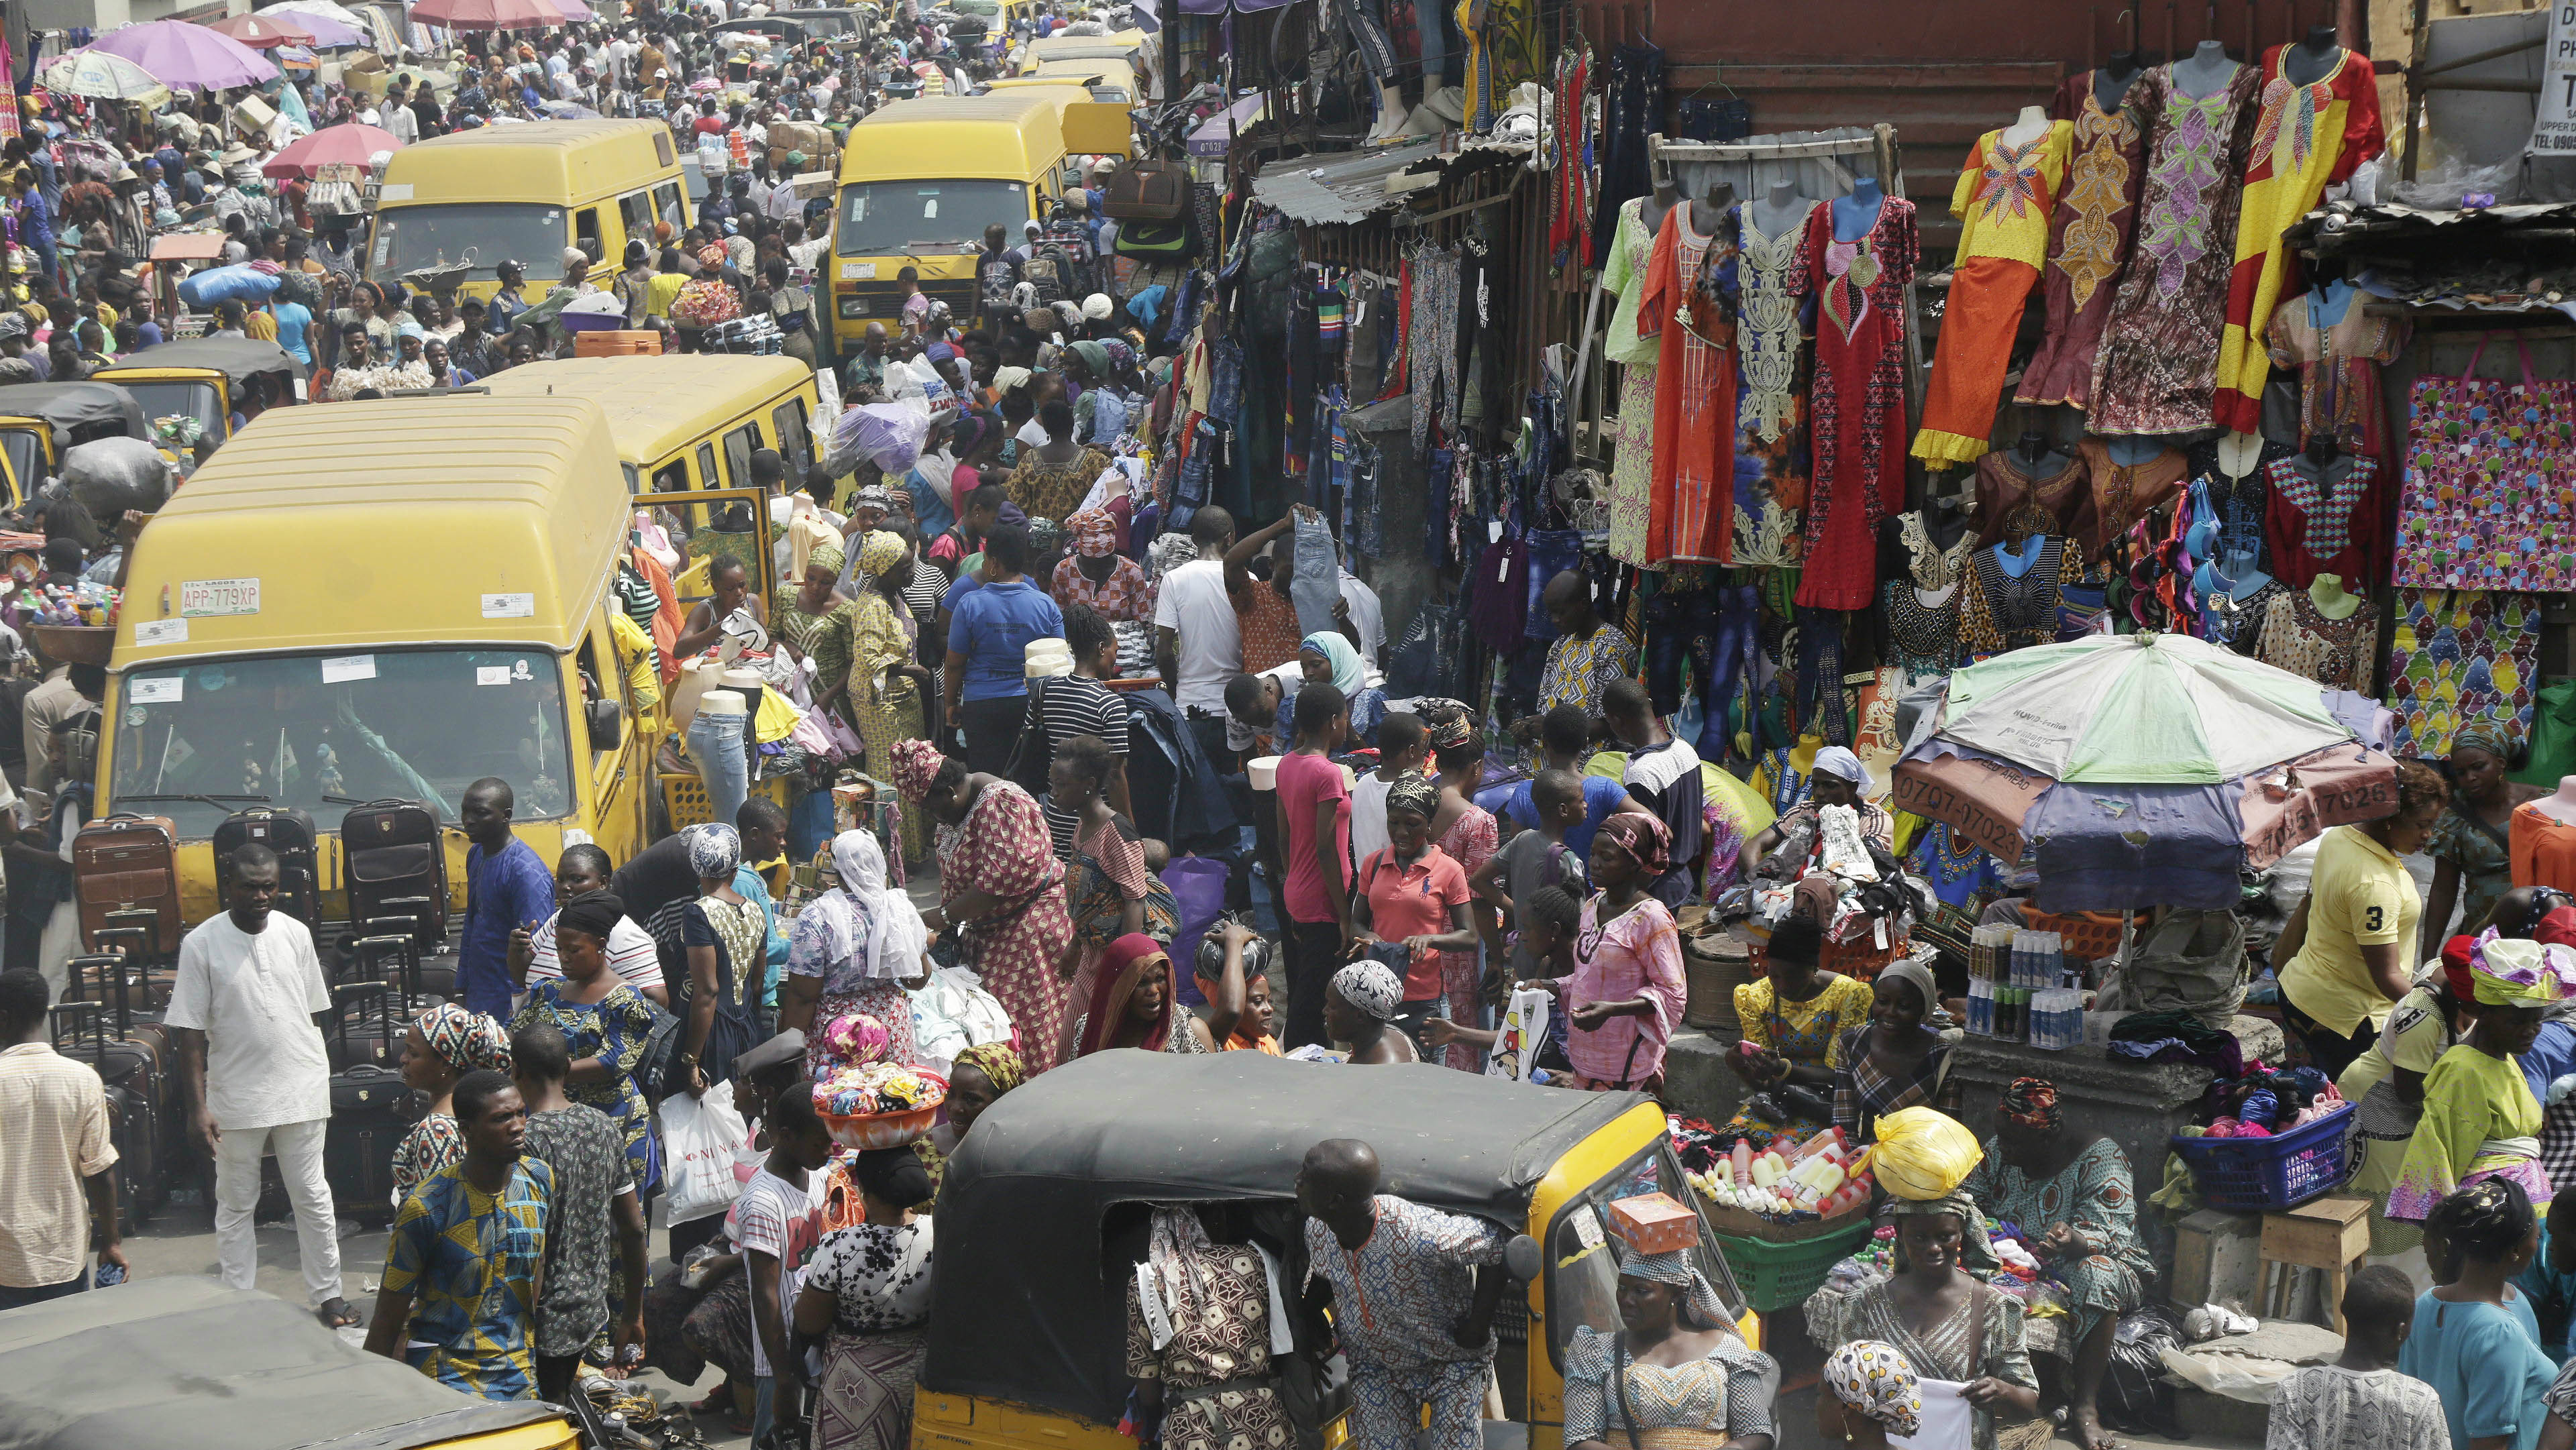 Pedestrians shop at Balogun market ahead of Christmas celebrations, in Lagos, Nigeria, Friday, Dec. 23, 2016.